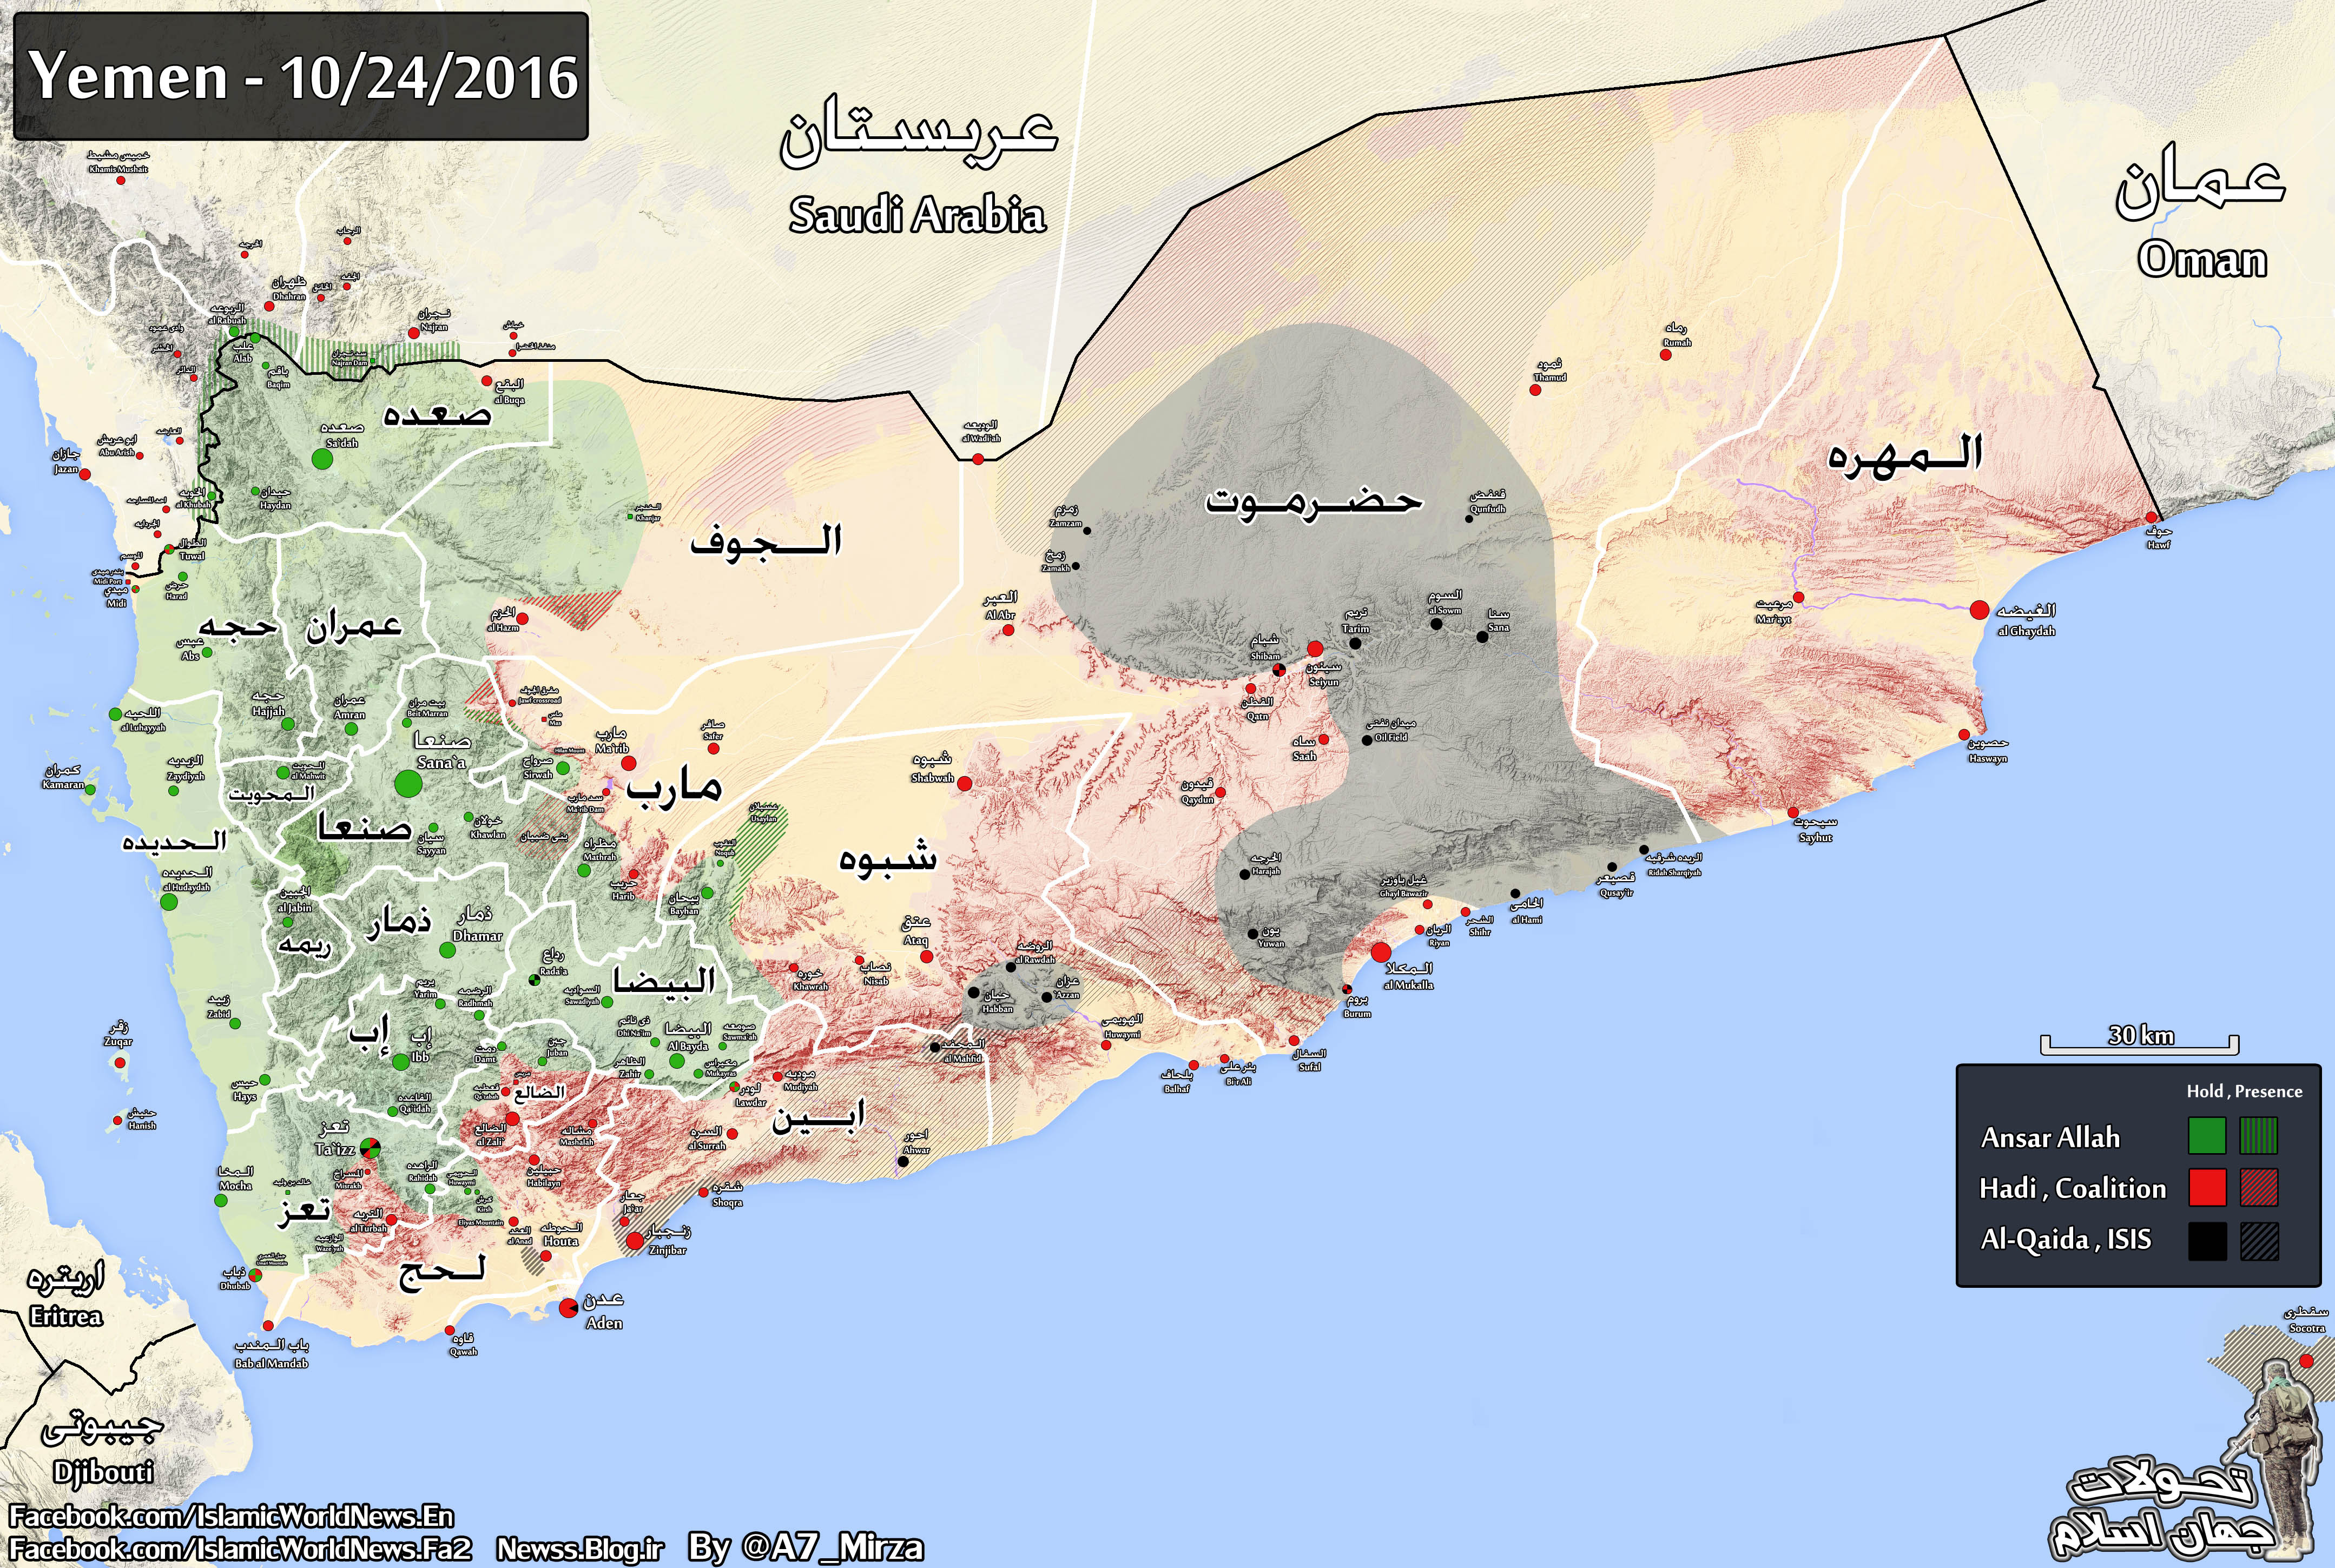 Map Update: Military Situation in Yemen on October 24, 2016